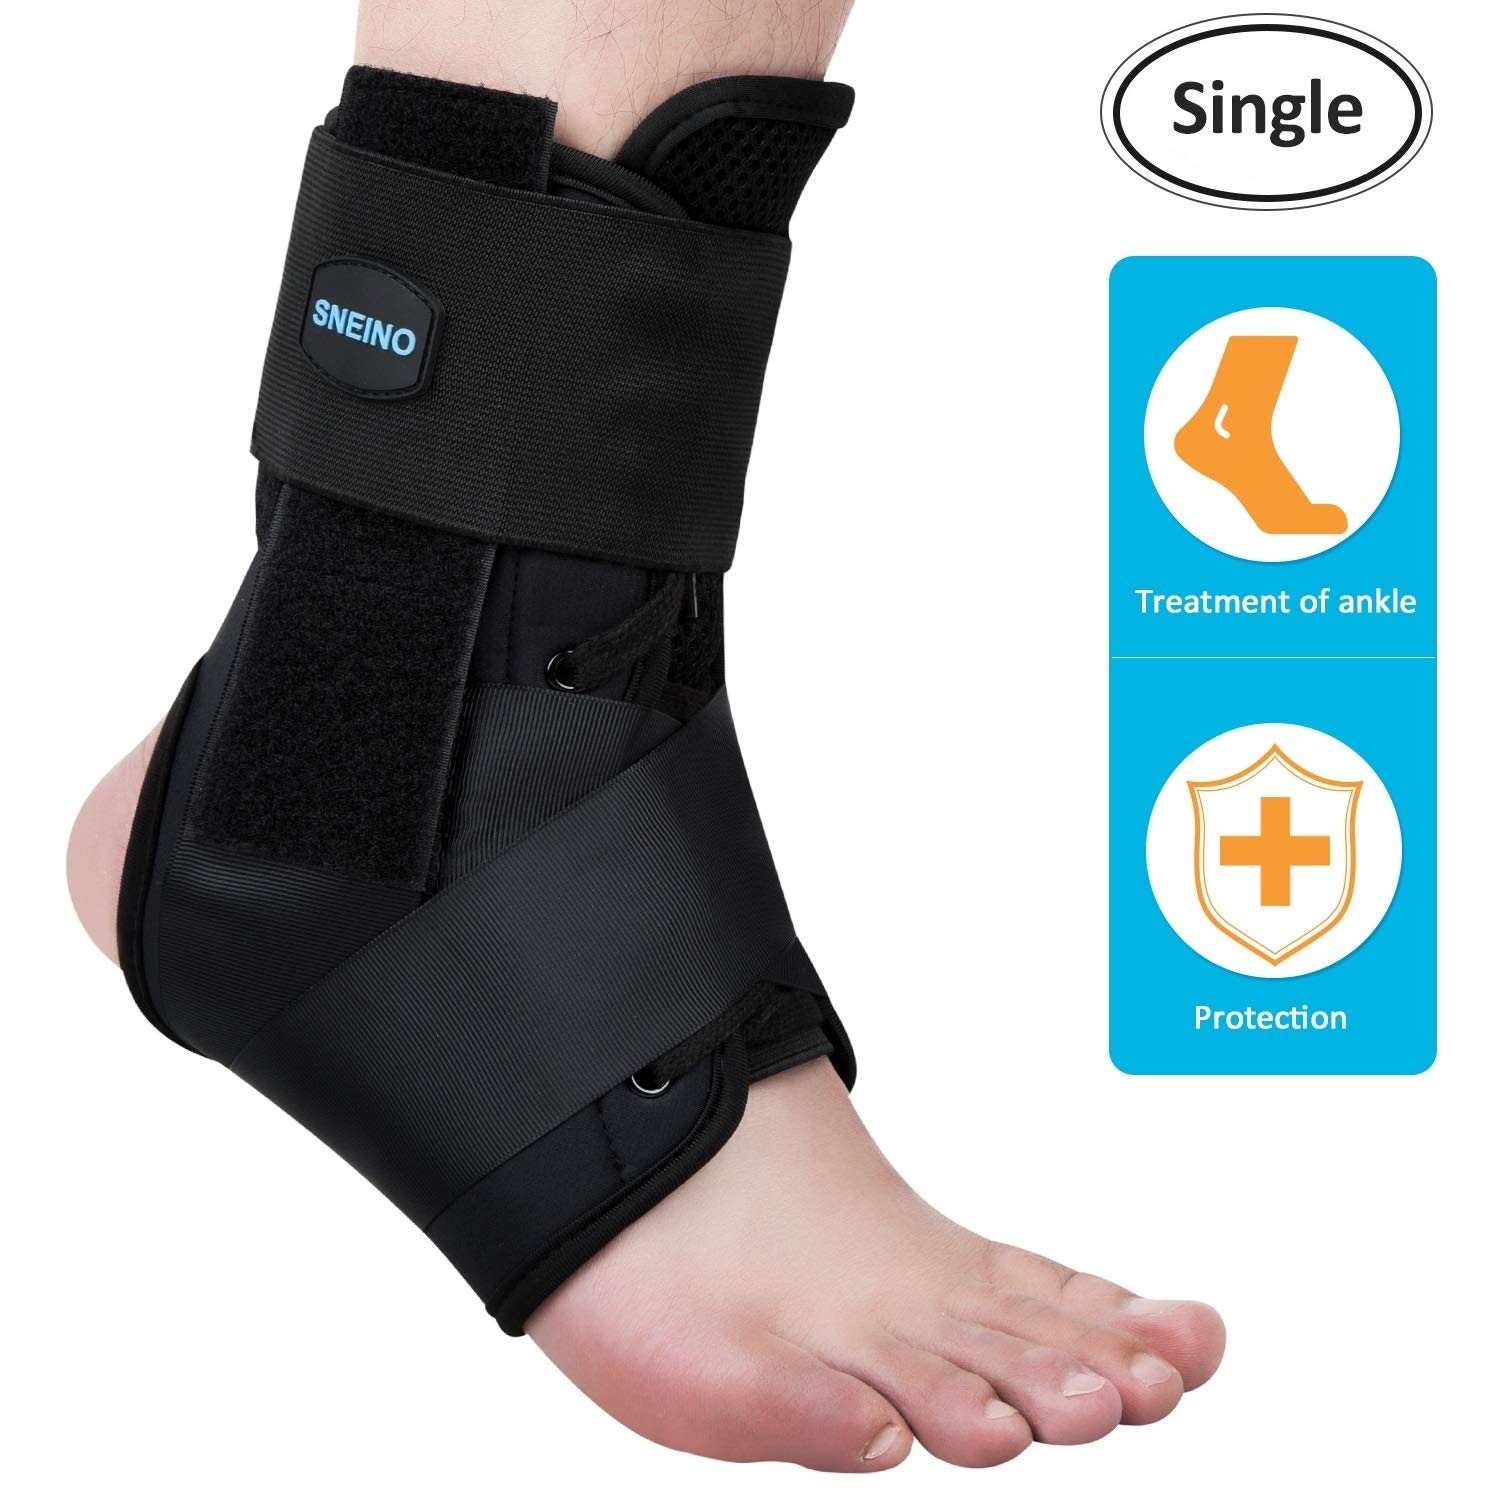 Ankle Brace Ankle Support Ankle Brace for Women Men Ankle Stabilizer Ankle Support Brace Stabilizer Lace up Kid Womens Sprained Ankle Brace for Women Men Ankle Braces Ankle Brace for Running - L